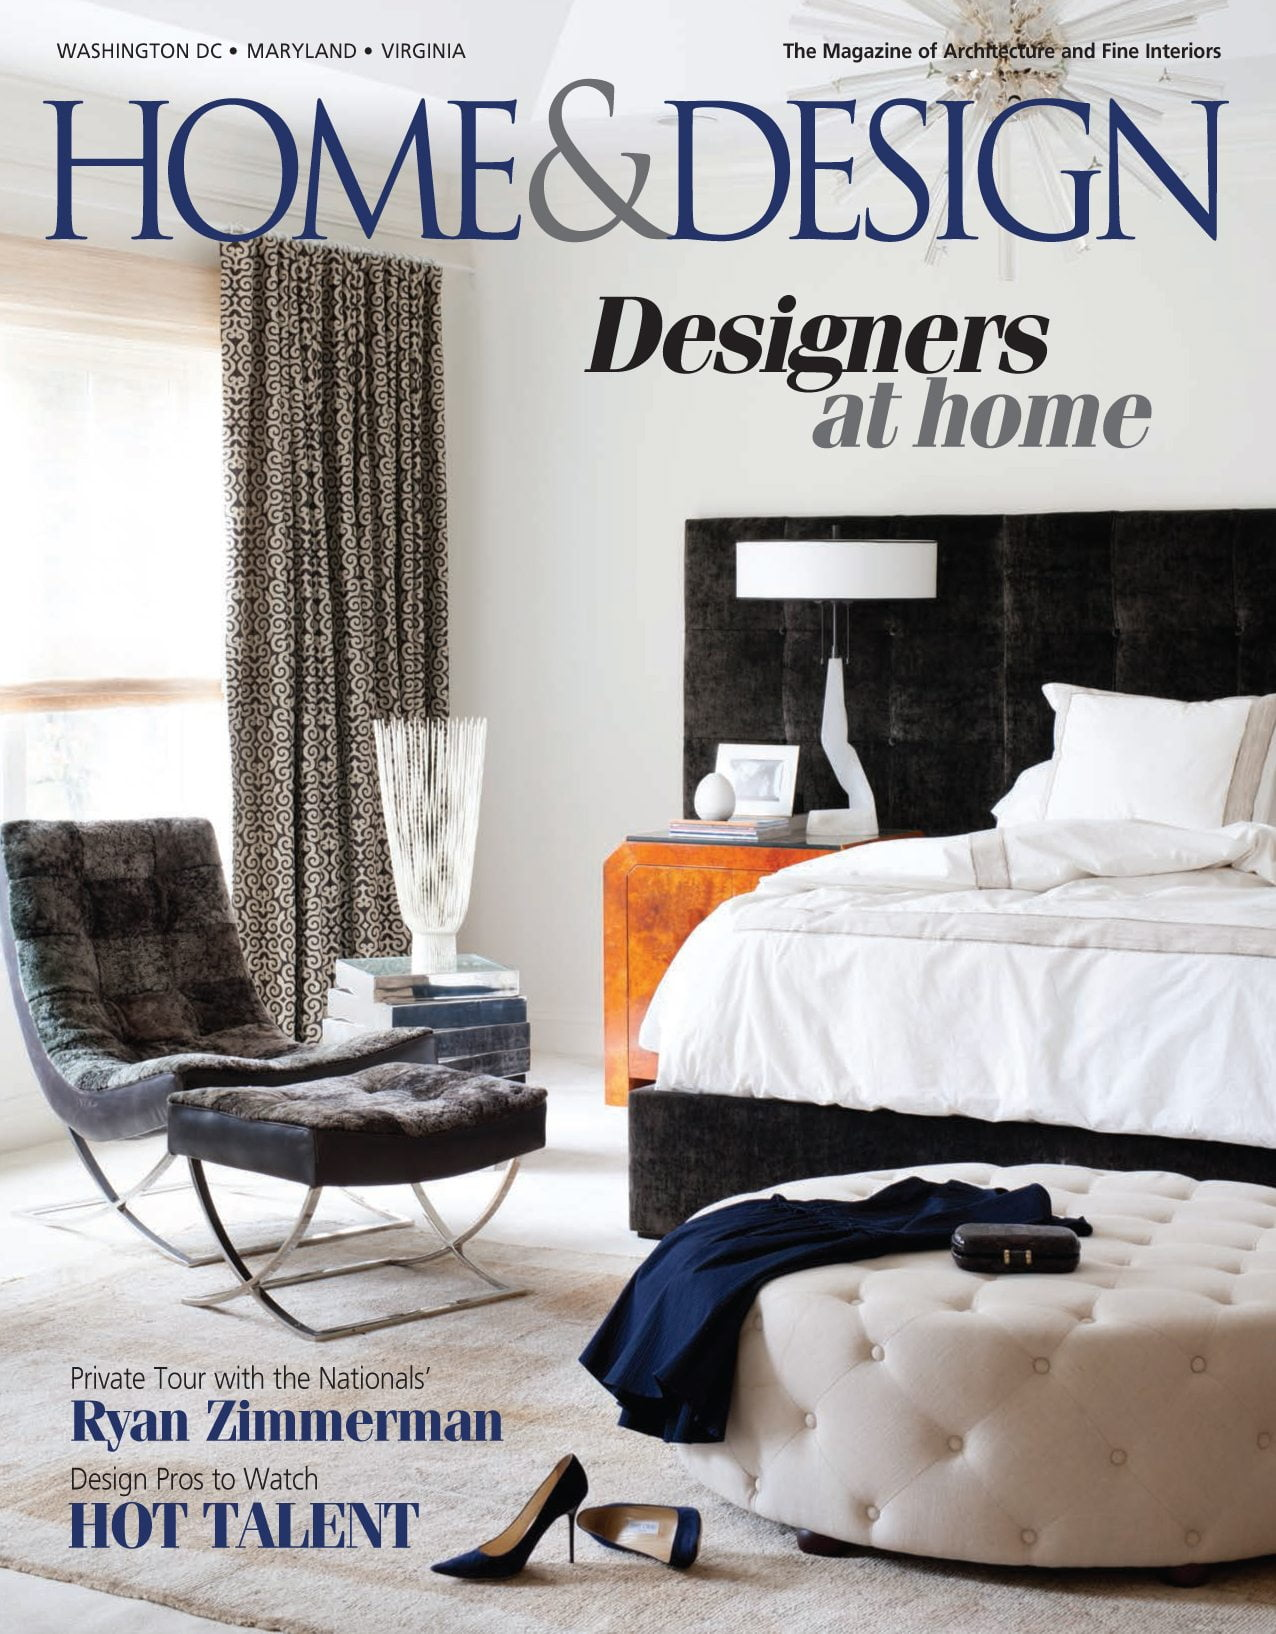 July/August 2016 Archives - Home & Design Magazine